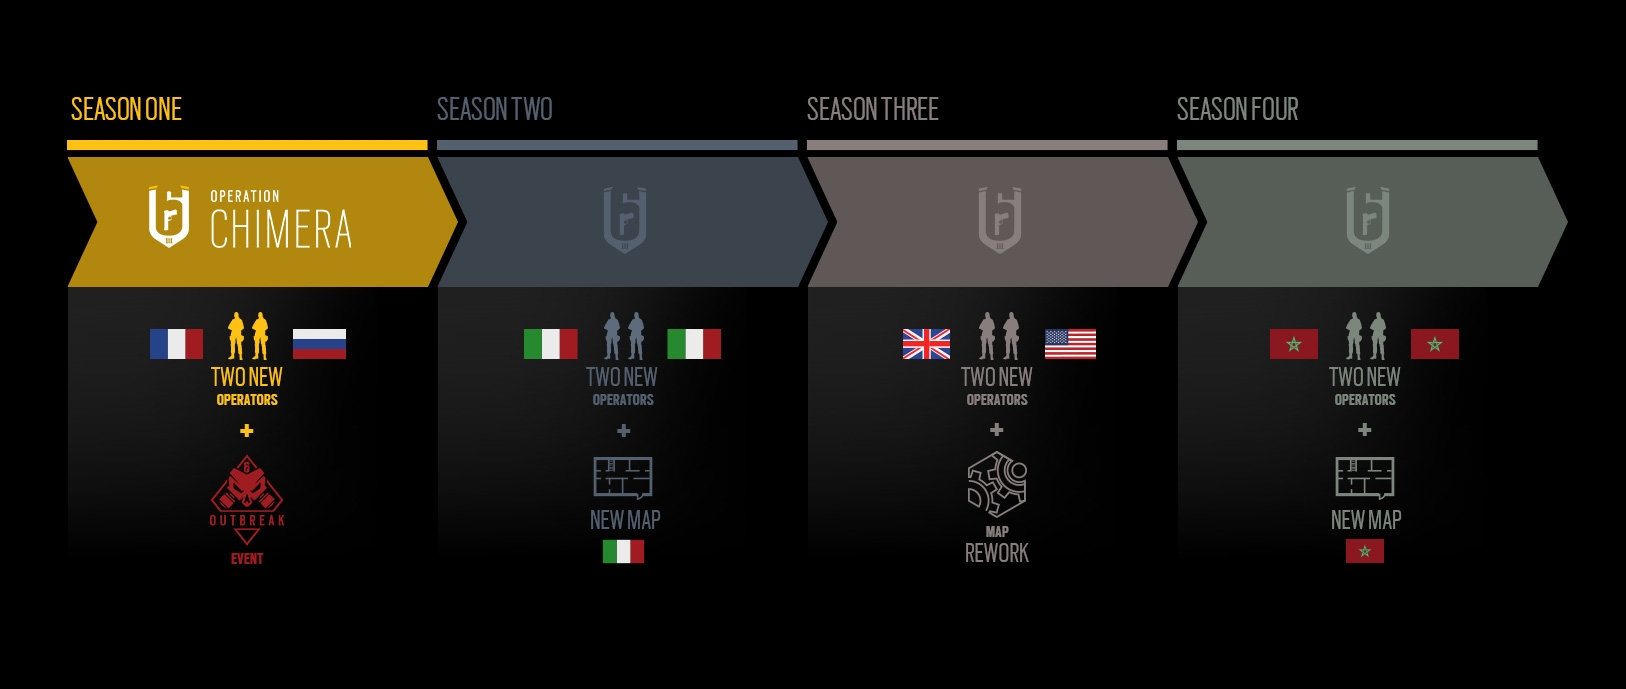 Rainbow Six Siege – Year 3 Content, Outbreak Event Announced | DeviceDaily.com